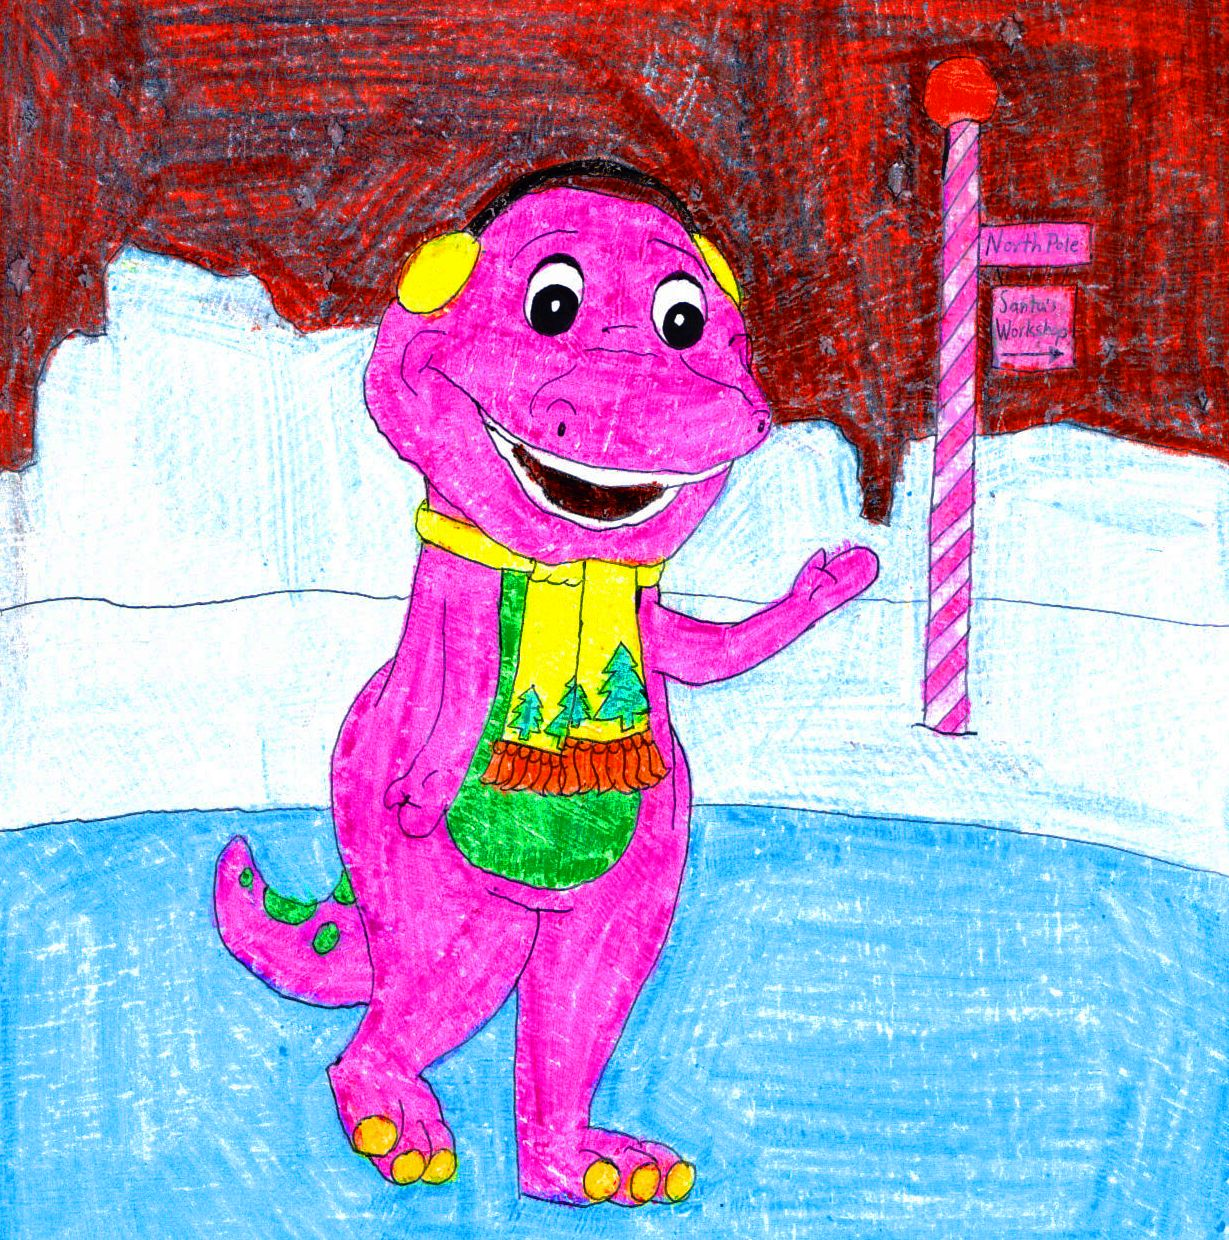 Barney And The Backyard Gang A Day At The Beach: Barney Ice Skating By BestBarneyFan On DeviantArt